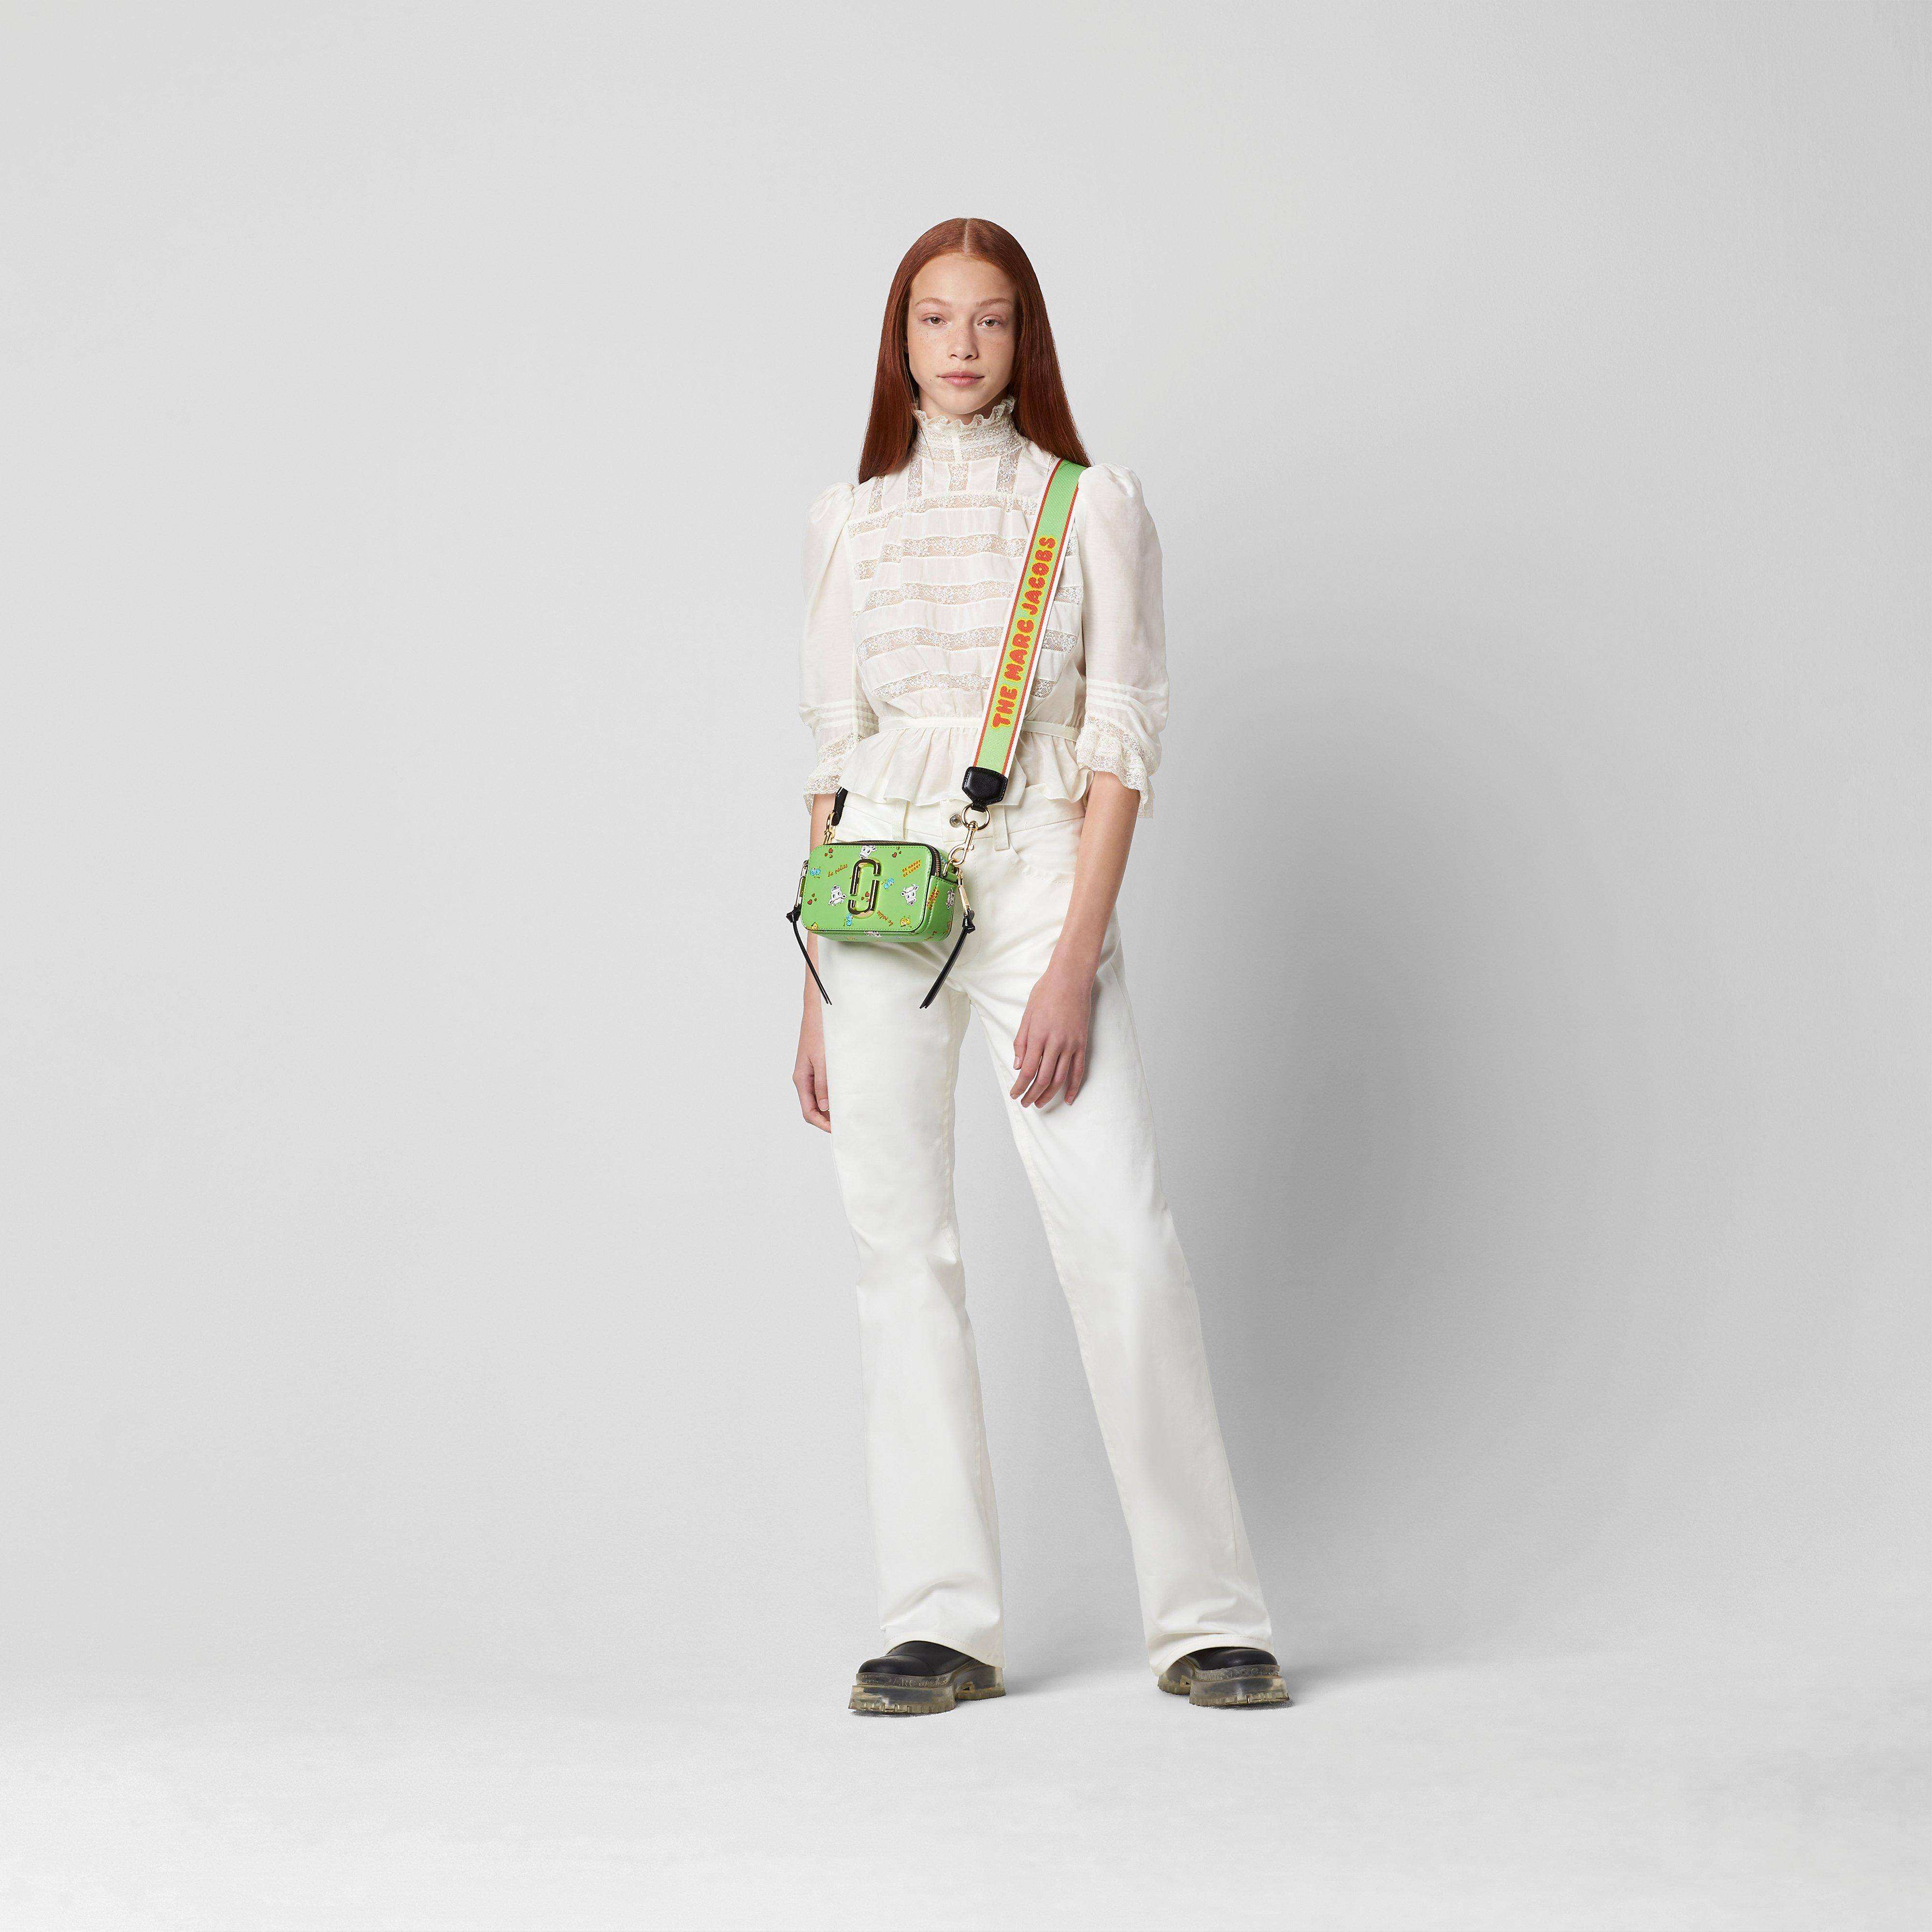 MARC JACOBS Leathers Magda Archer x The Snapshot Marc Jacobs